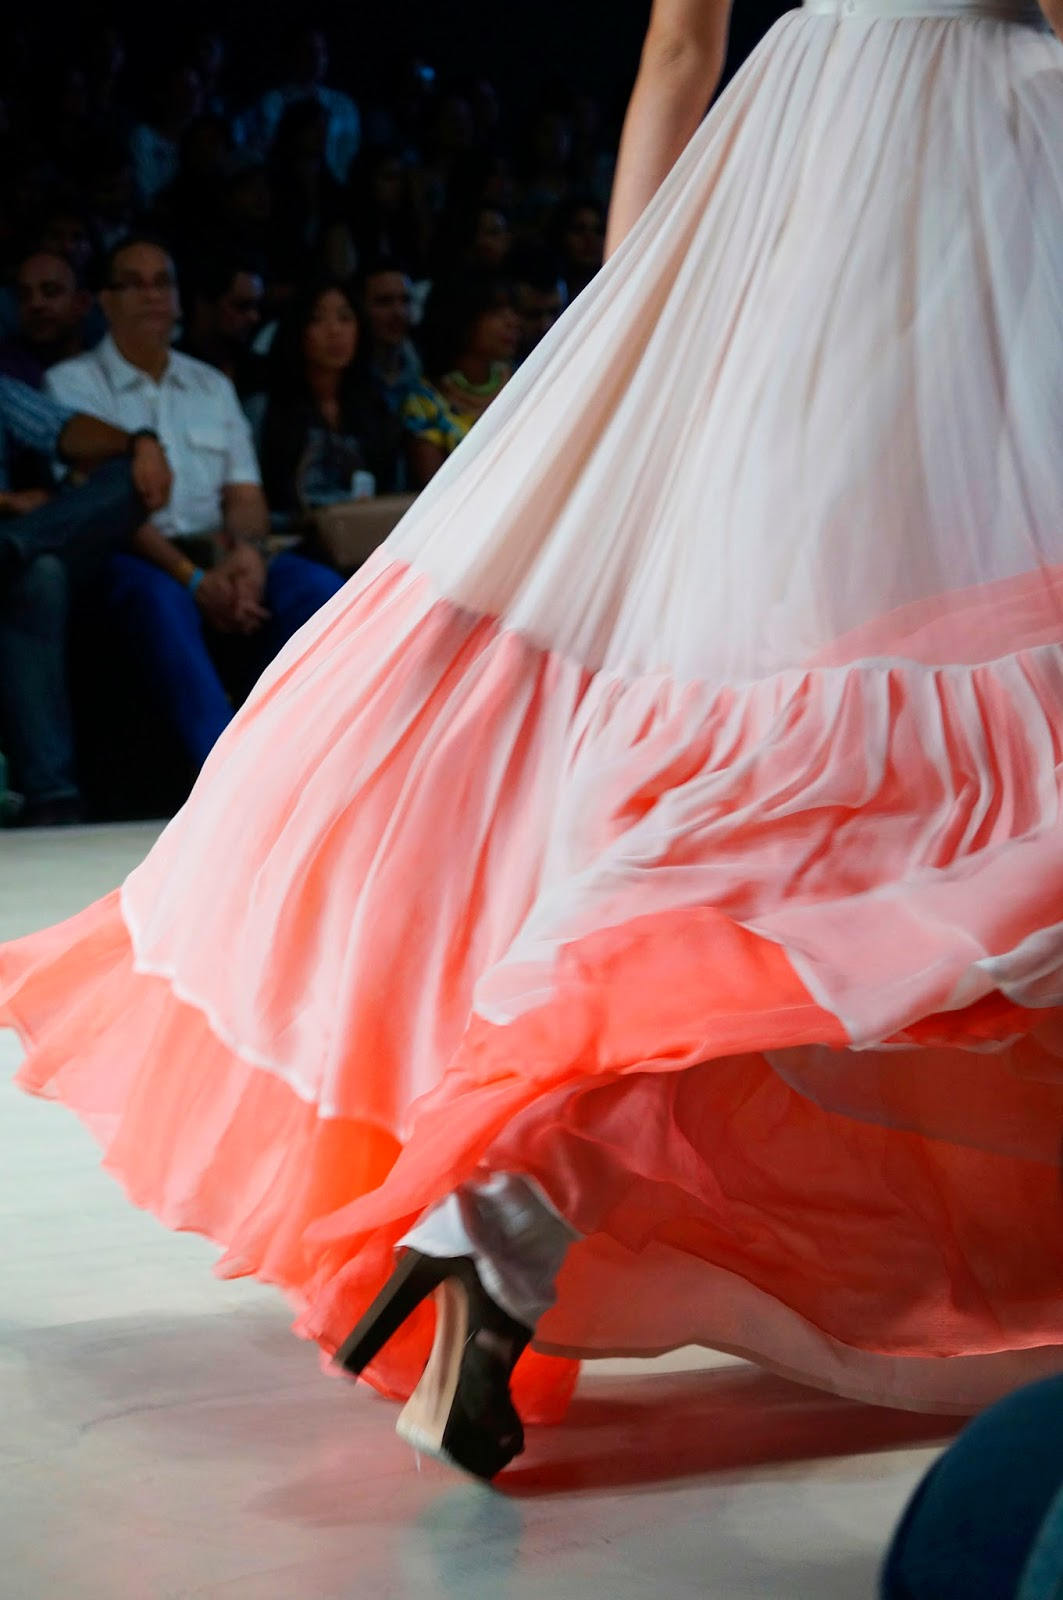 Kris Goyri Moda, Panama Fashion Week